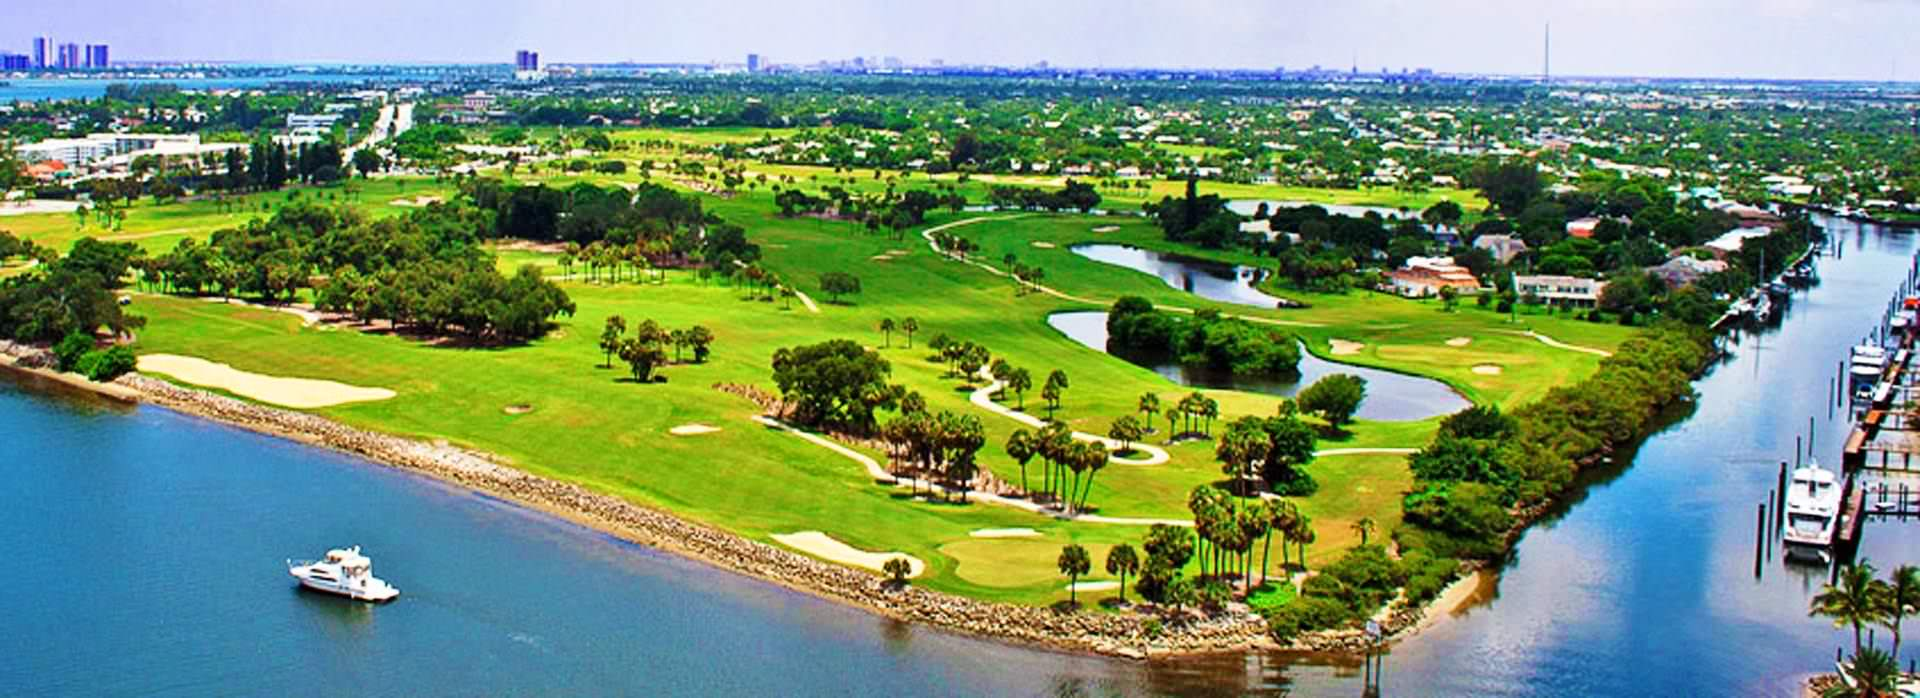 northpalmbeachcountryclub - pga village